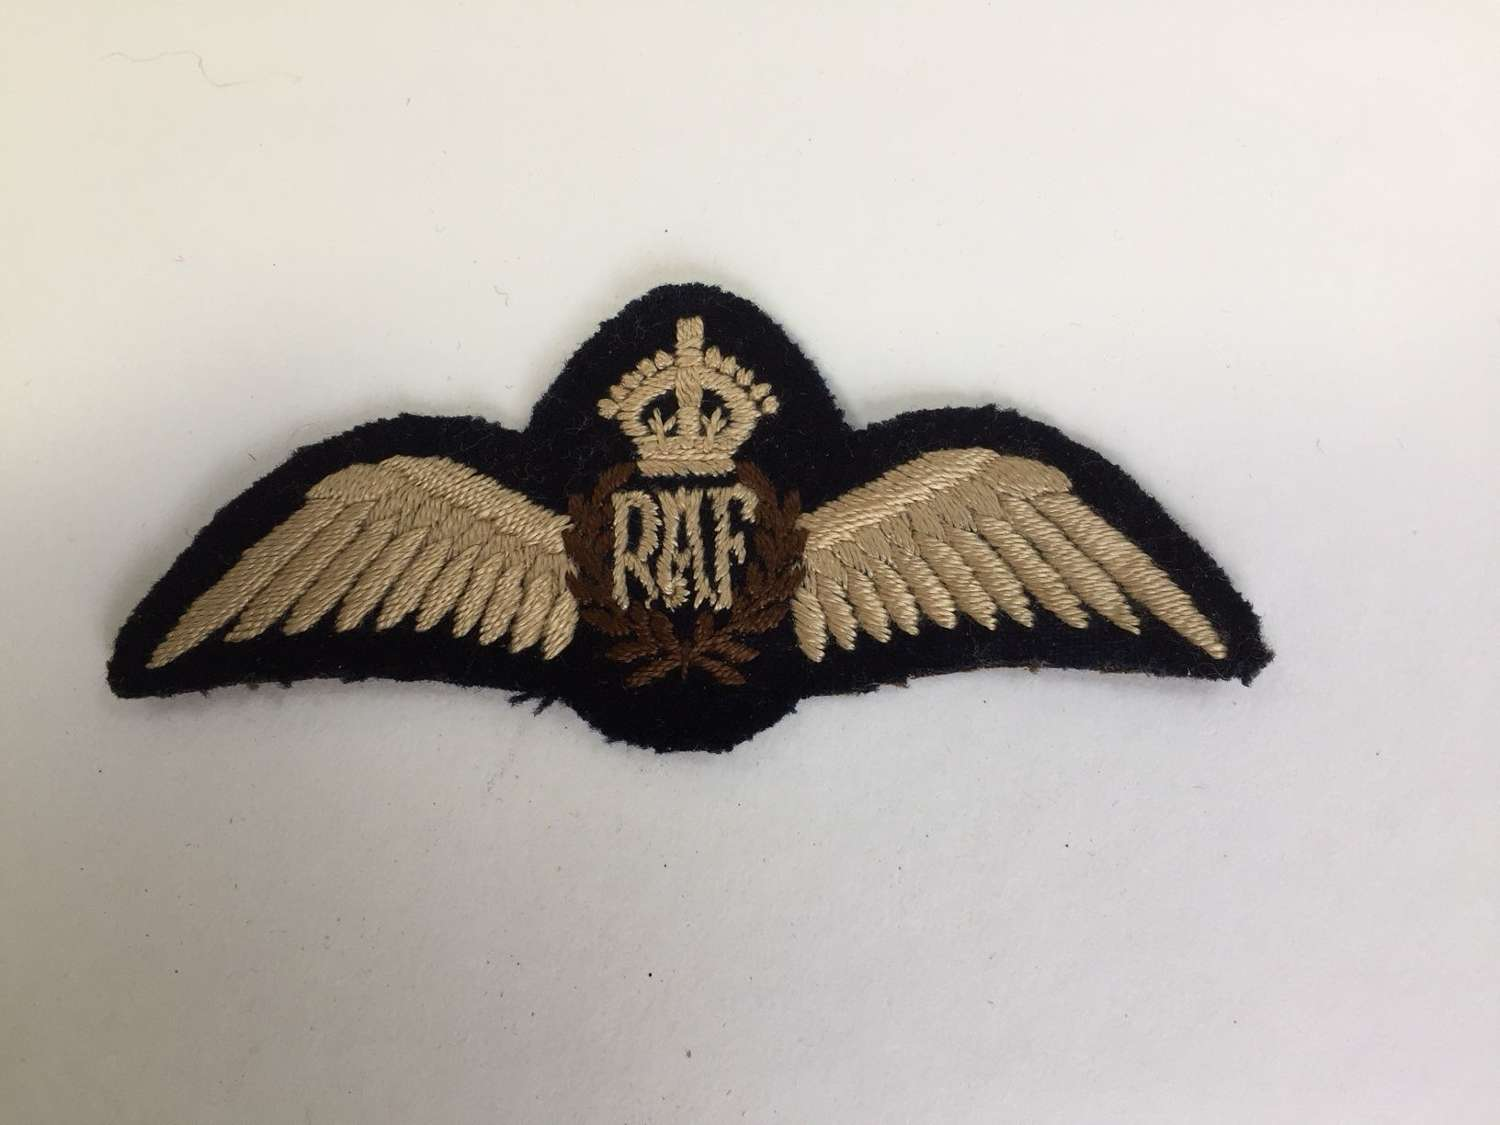 WW2 RAF issue pilot's wing